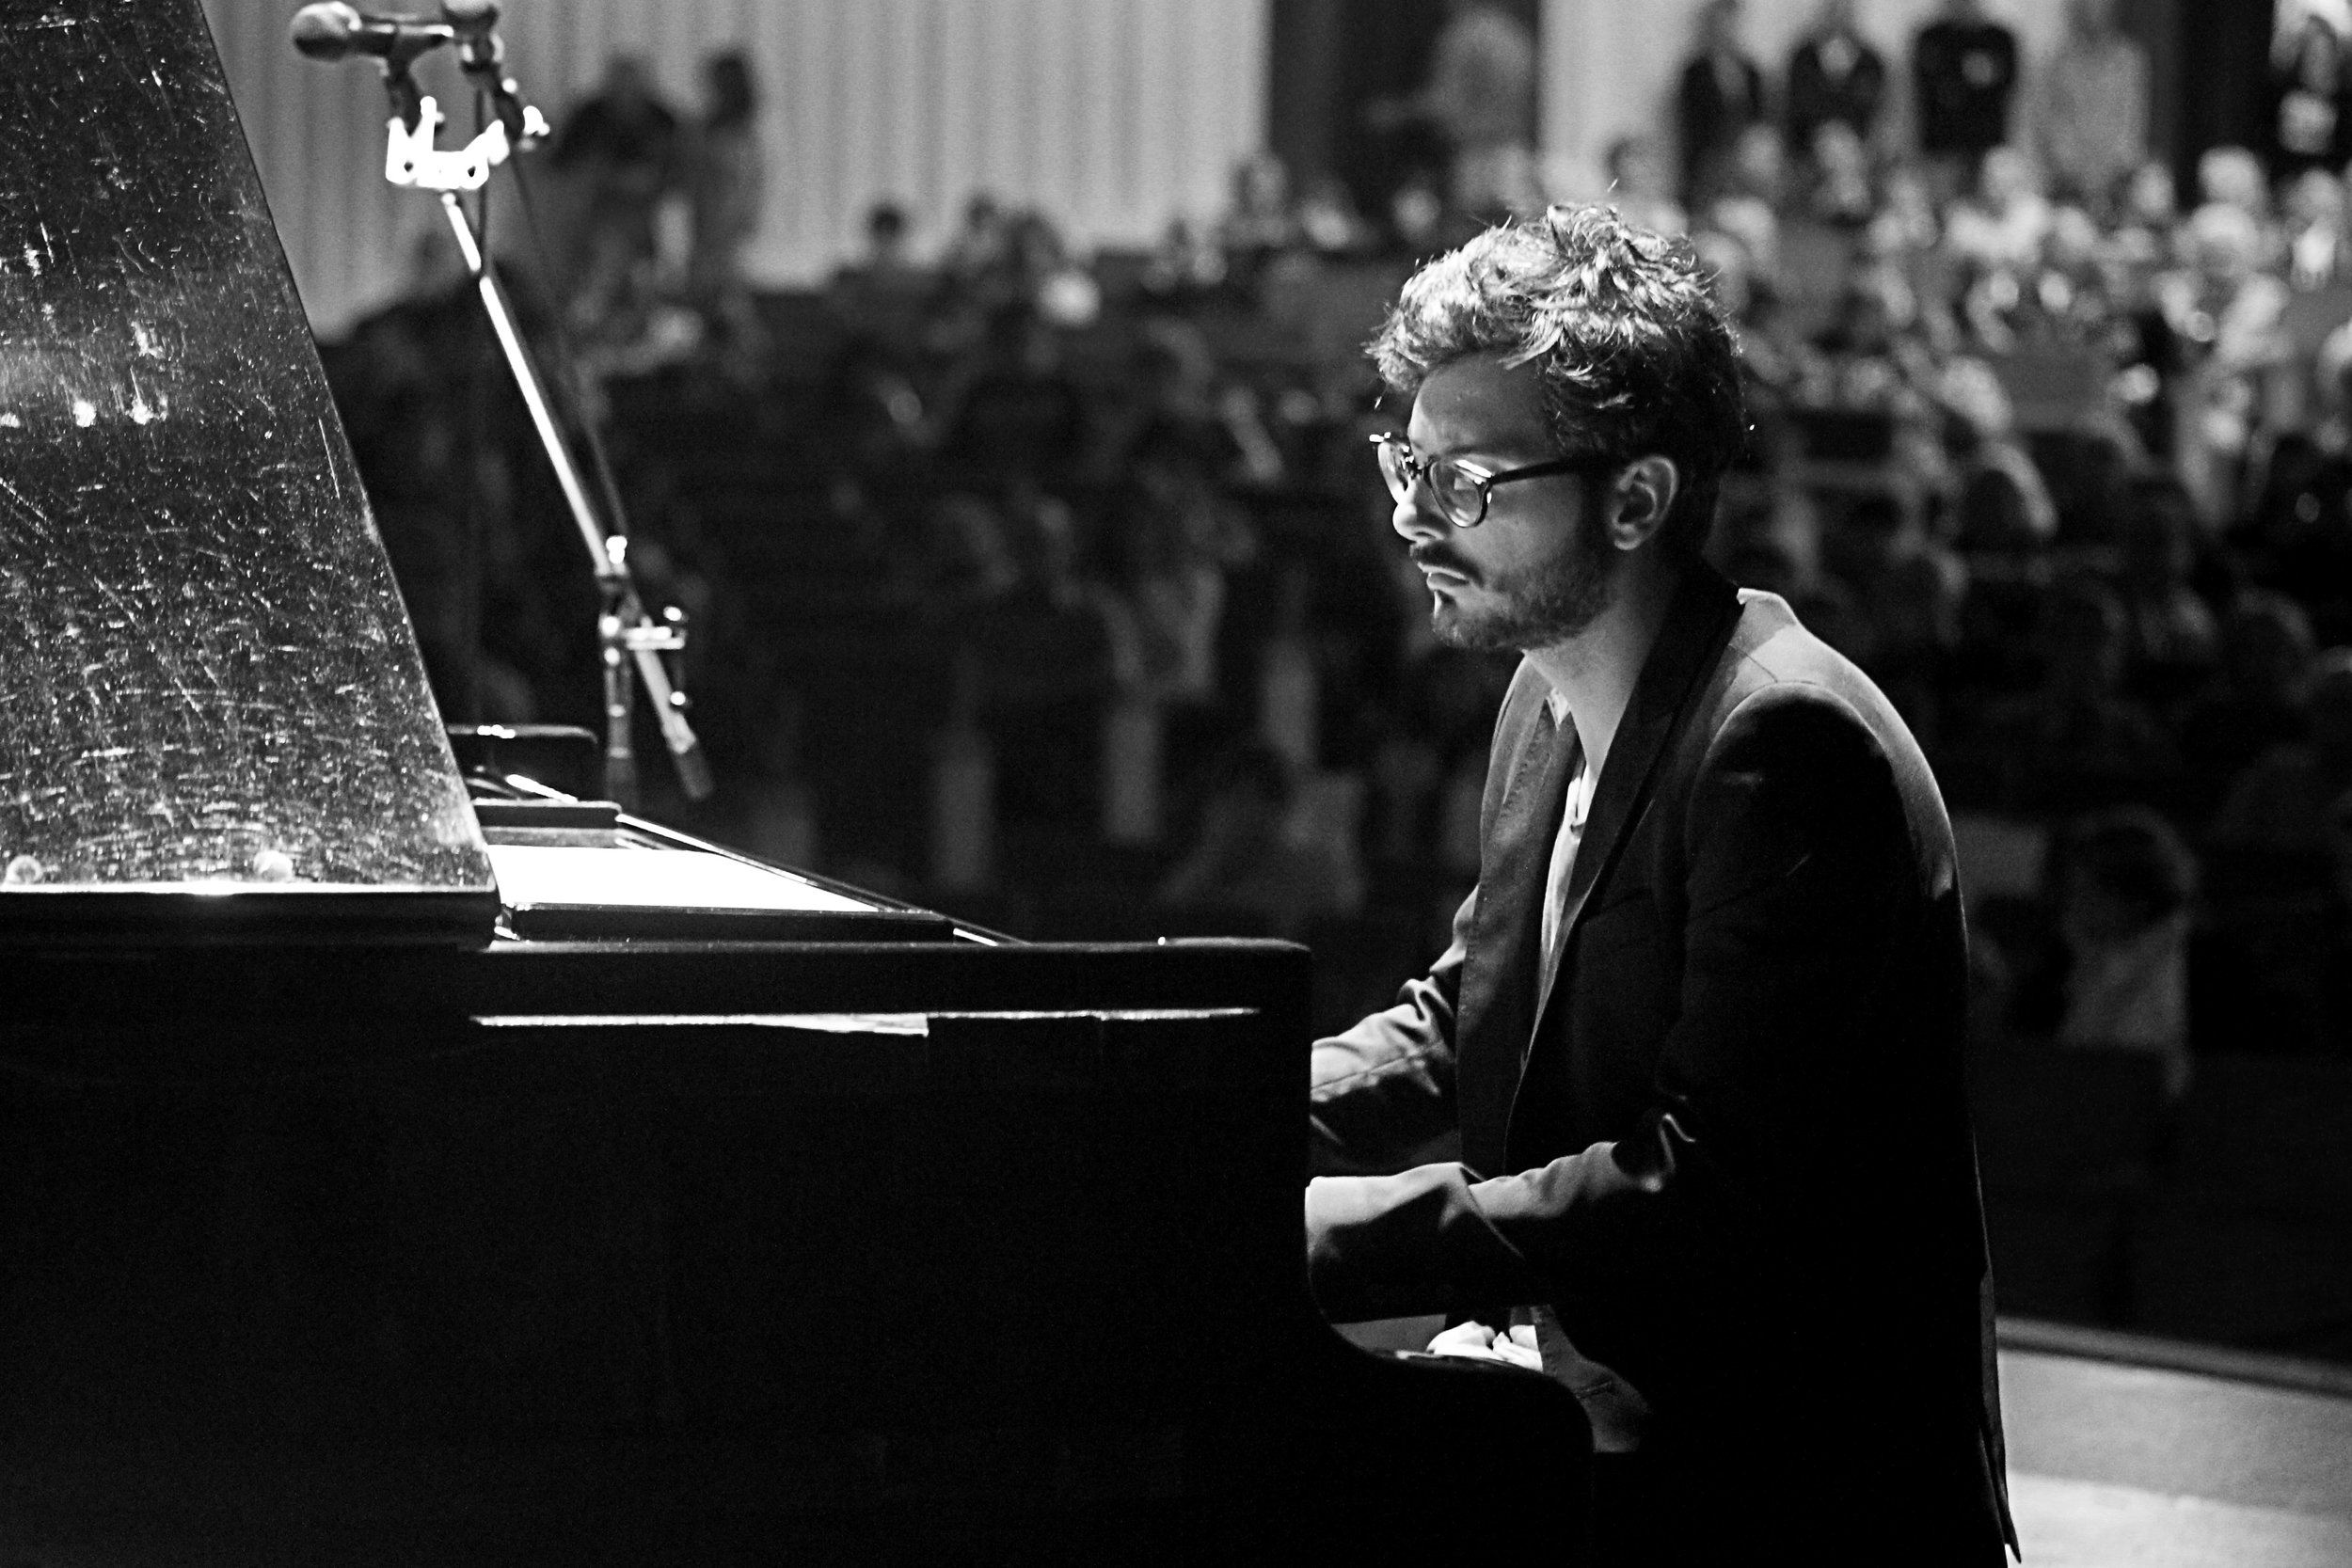 Francesco Nigri piano BW.jpg